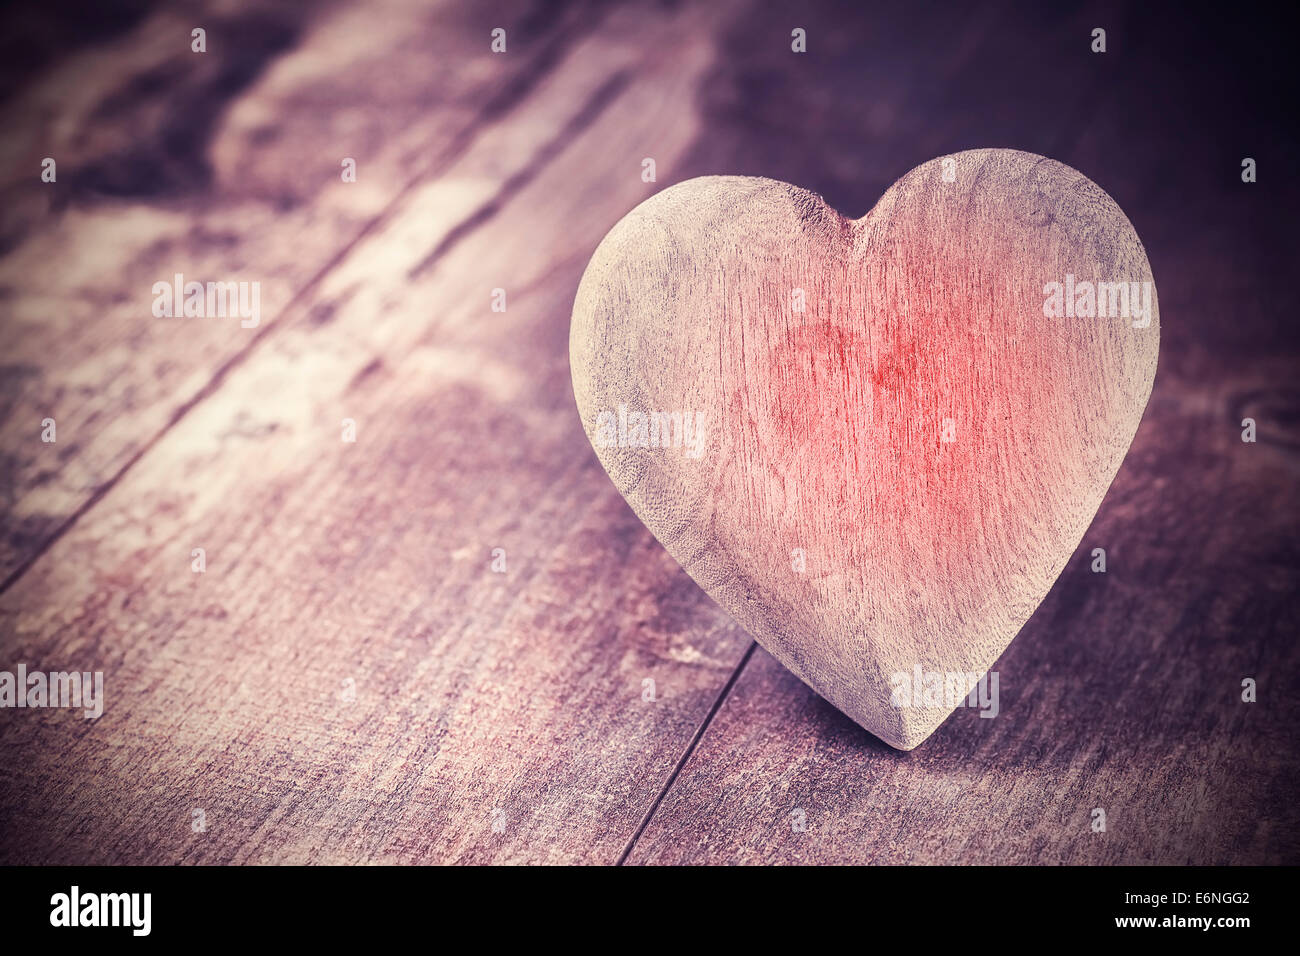 Vintage style heart on rustic wooden background, text space. - Stock Image